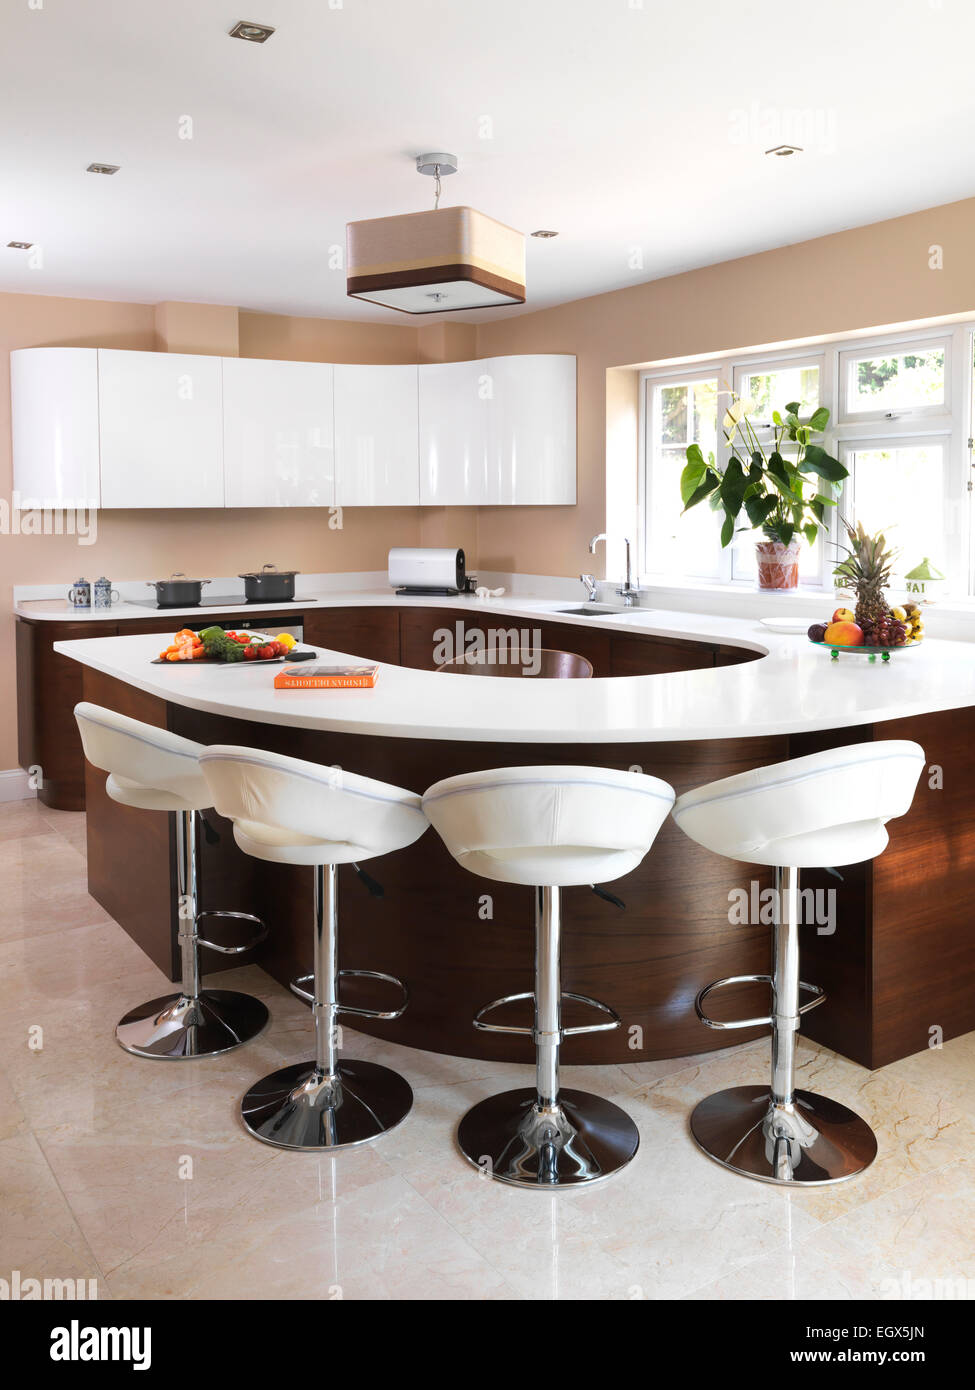 bar stools at breakfast bar in modern kitchen uk home stock photo  - bar stools at breakfast bar in modern kitchen uk home